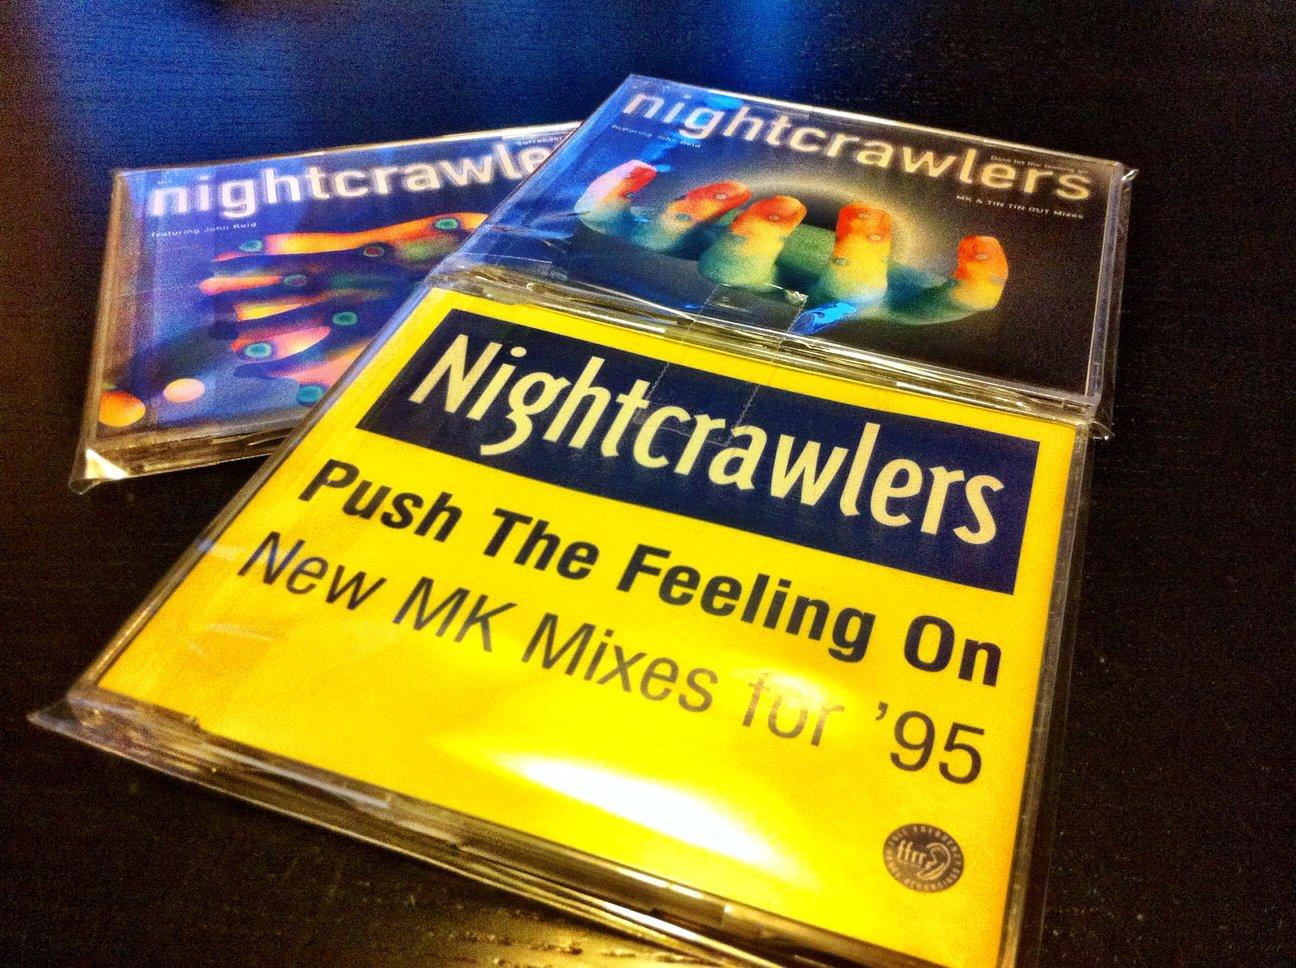 Nightcrawlers - Push The Feeling On (MK Dub Revisited)